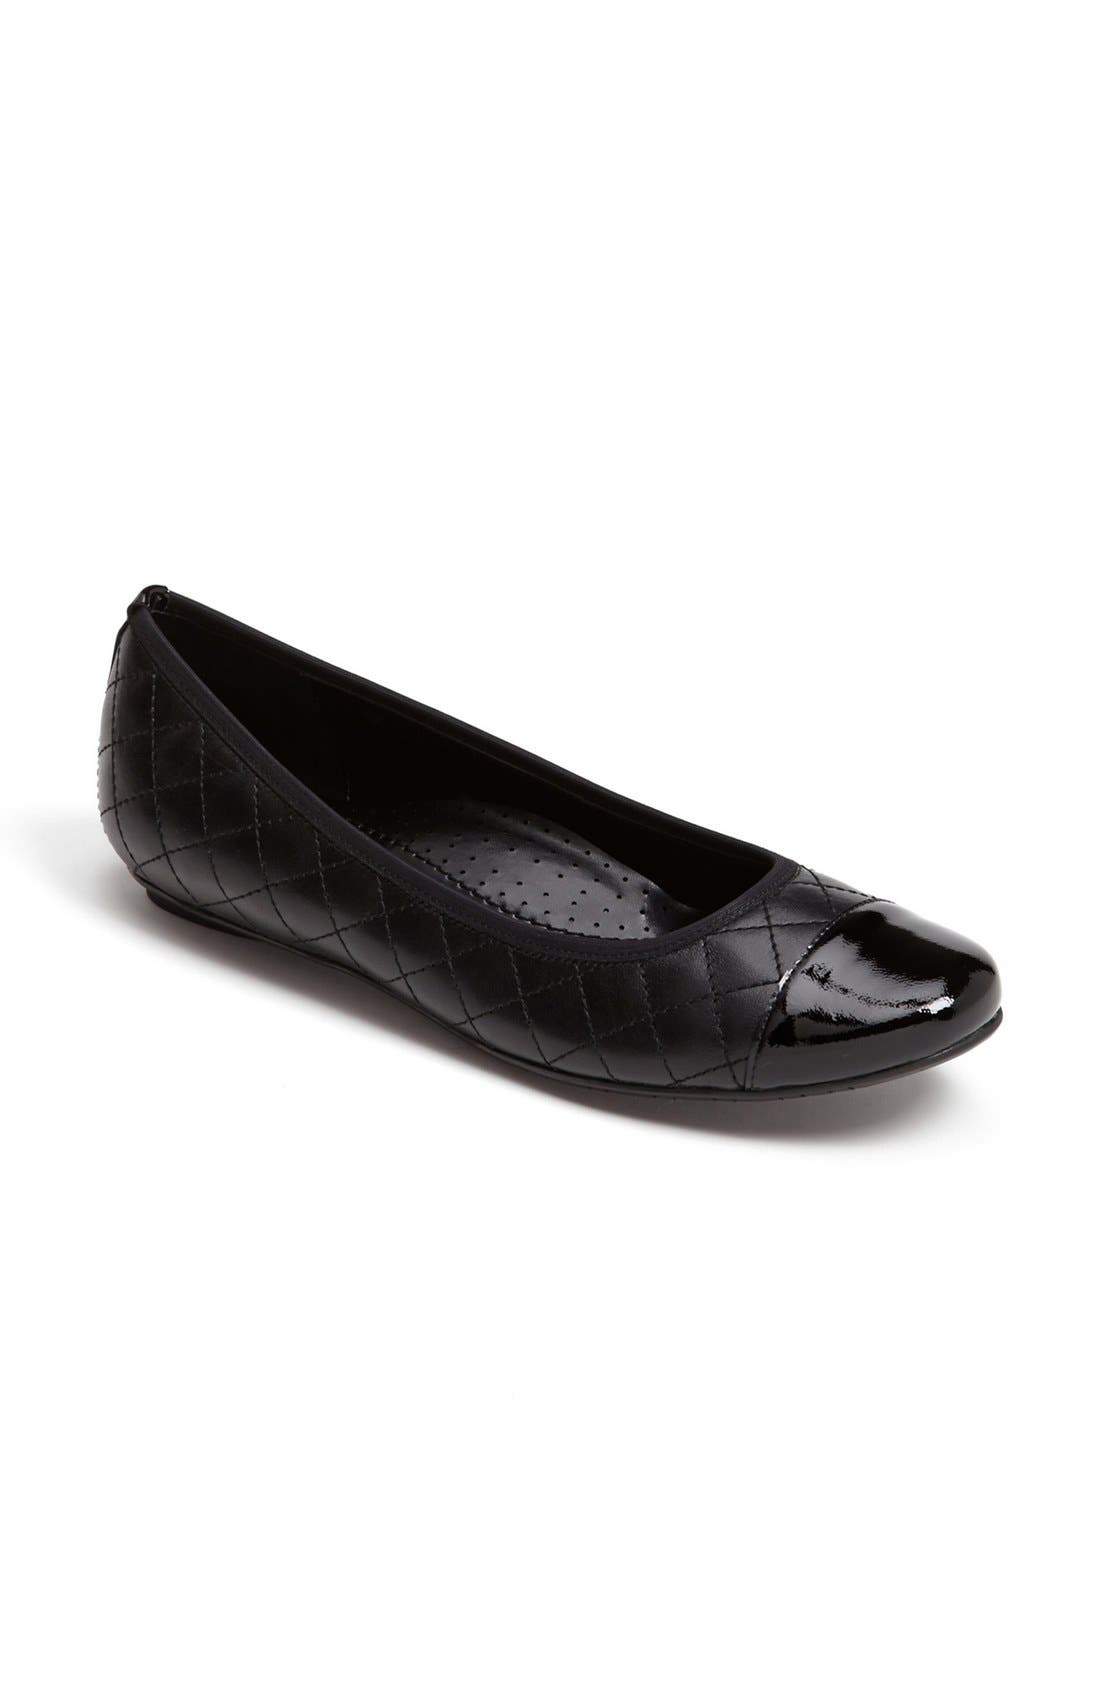 'Serene' Flat,                             Alternate thumbnail 2, color,                             BLACK NAPPA/ BLACK PATENT